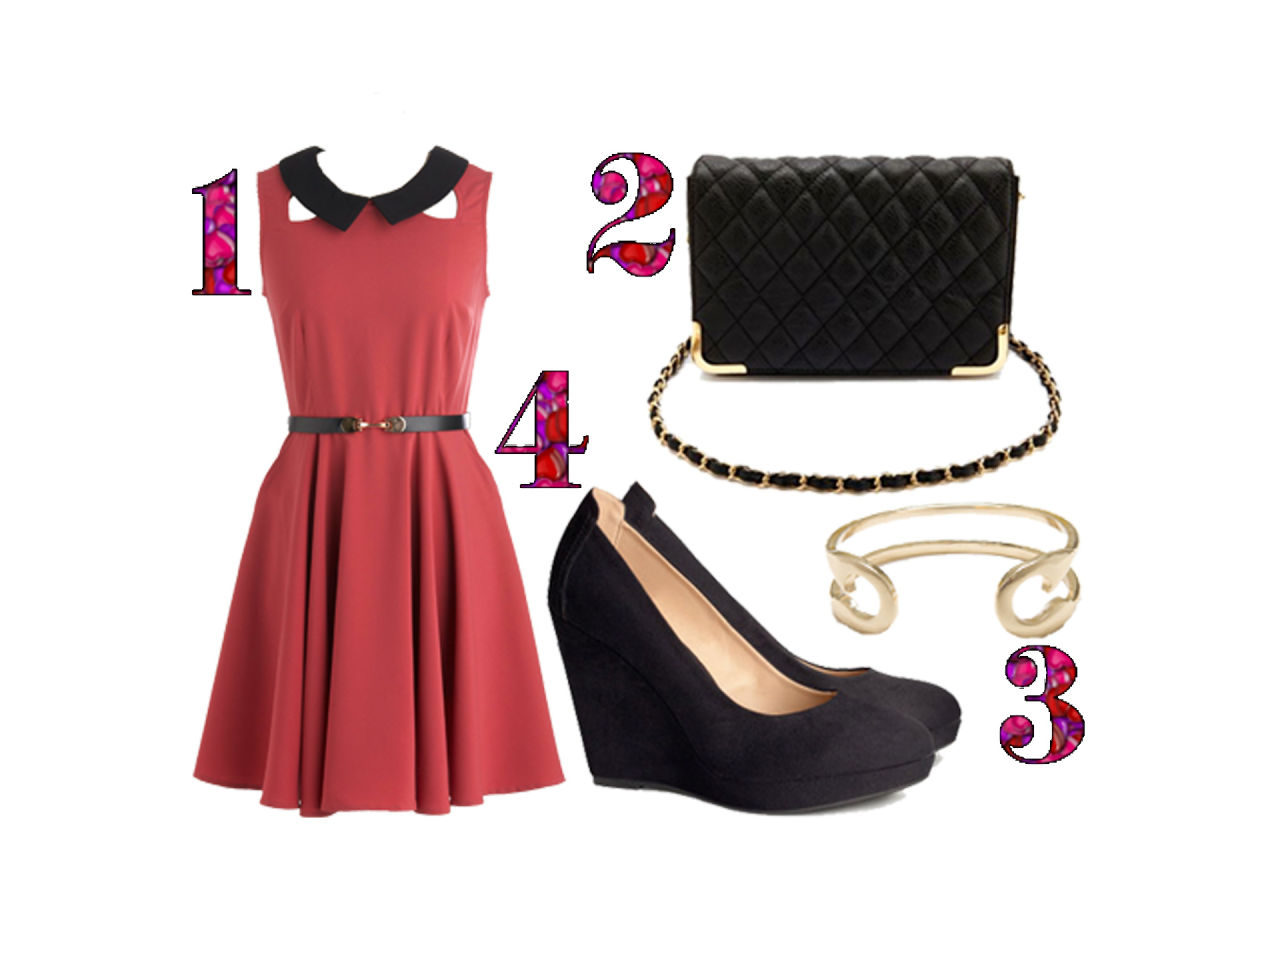 54e8231588f24_-_sev-valentines-day-outfits-date-s2.jpg